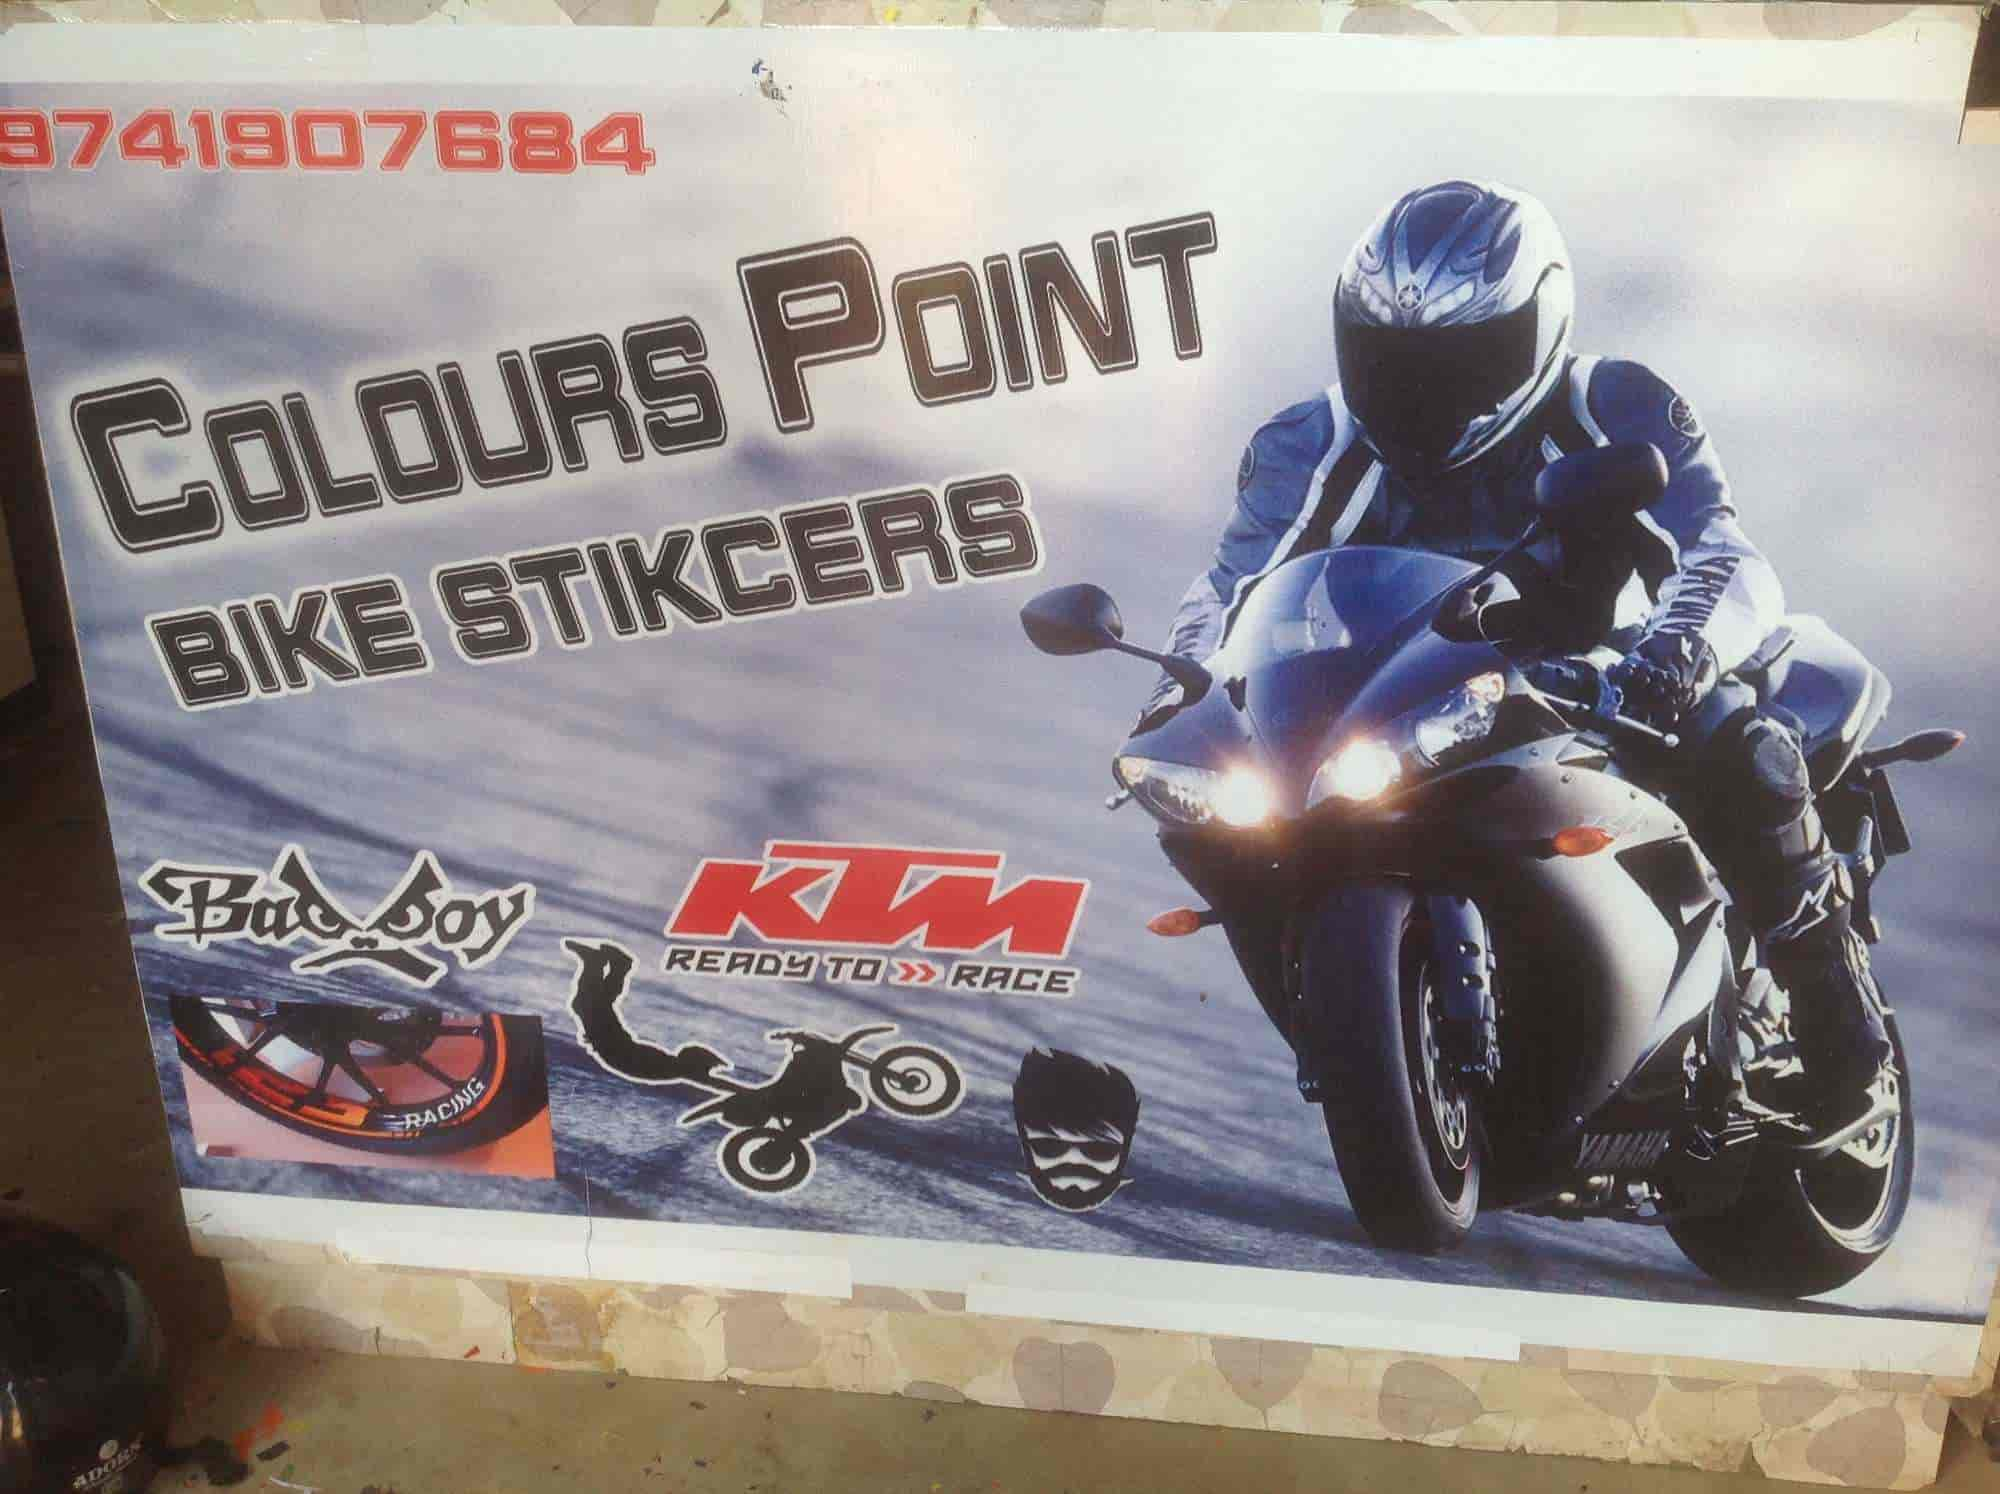 Colours point bike radium stickers modifier near rto office bus body painting contractors in davangere justdial